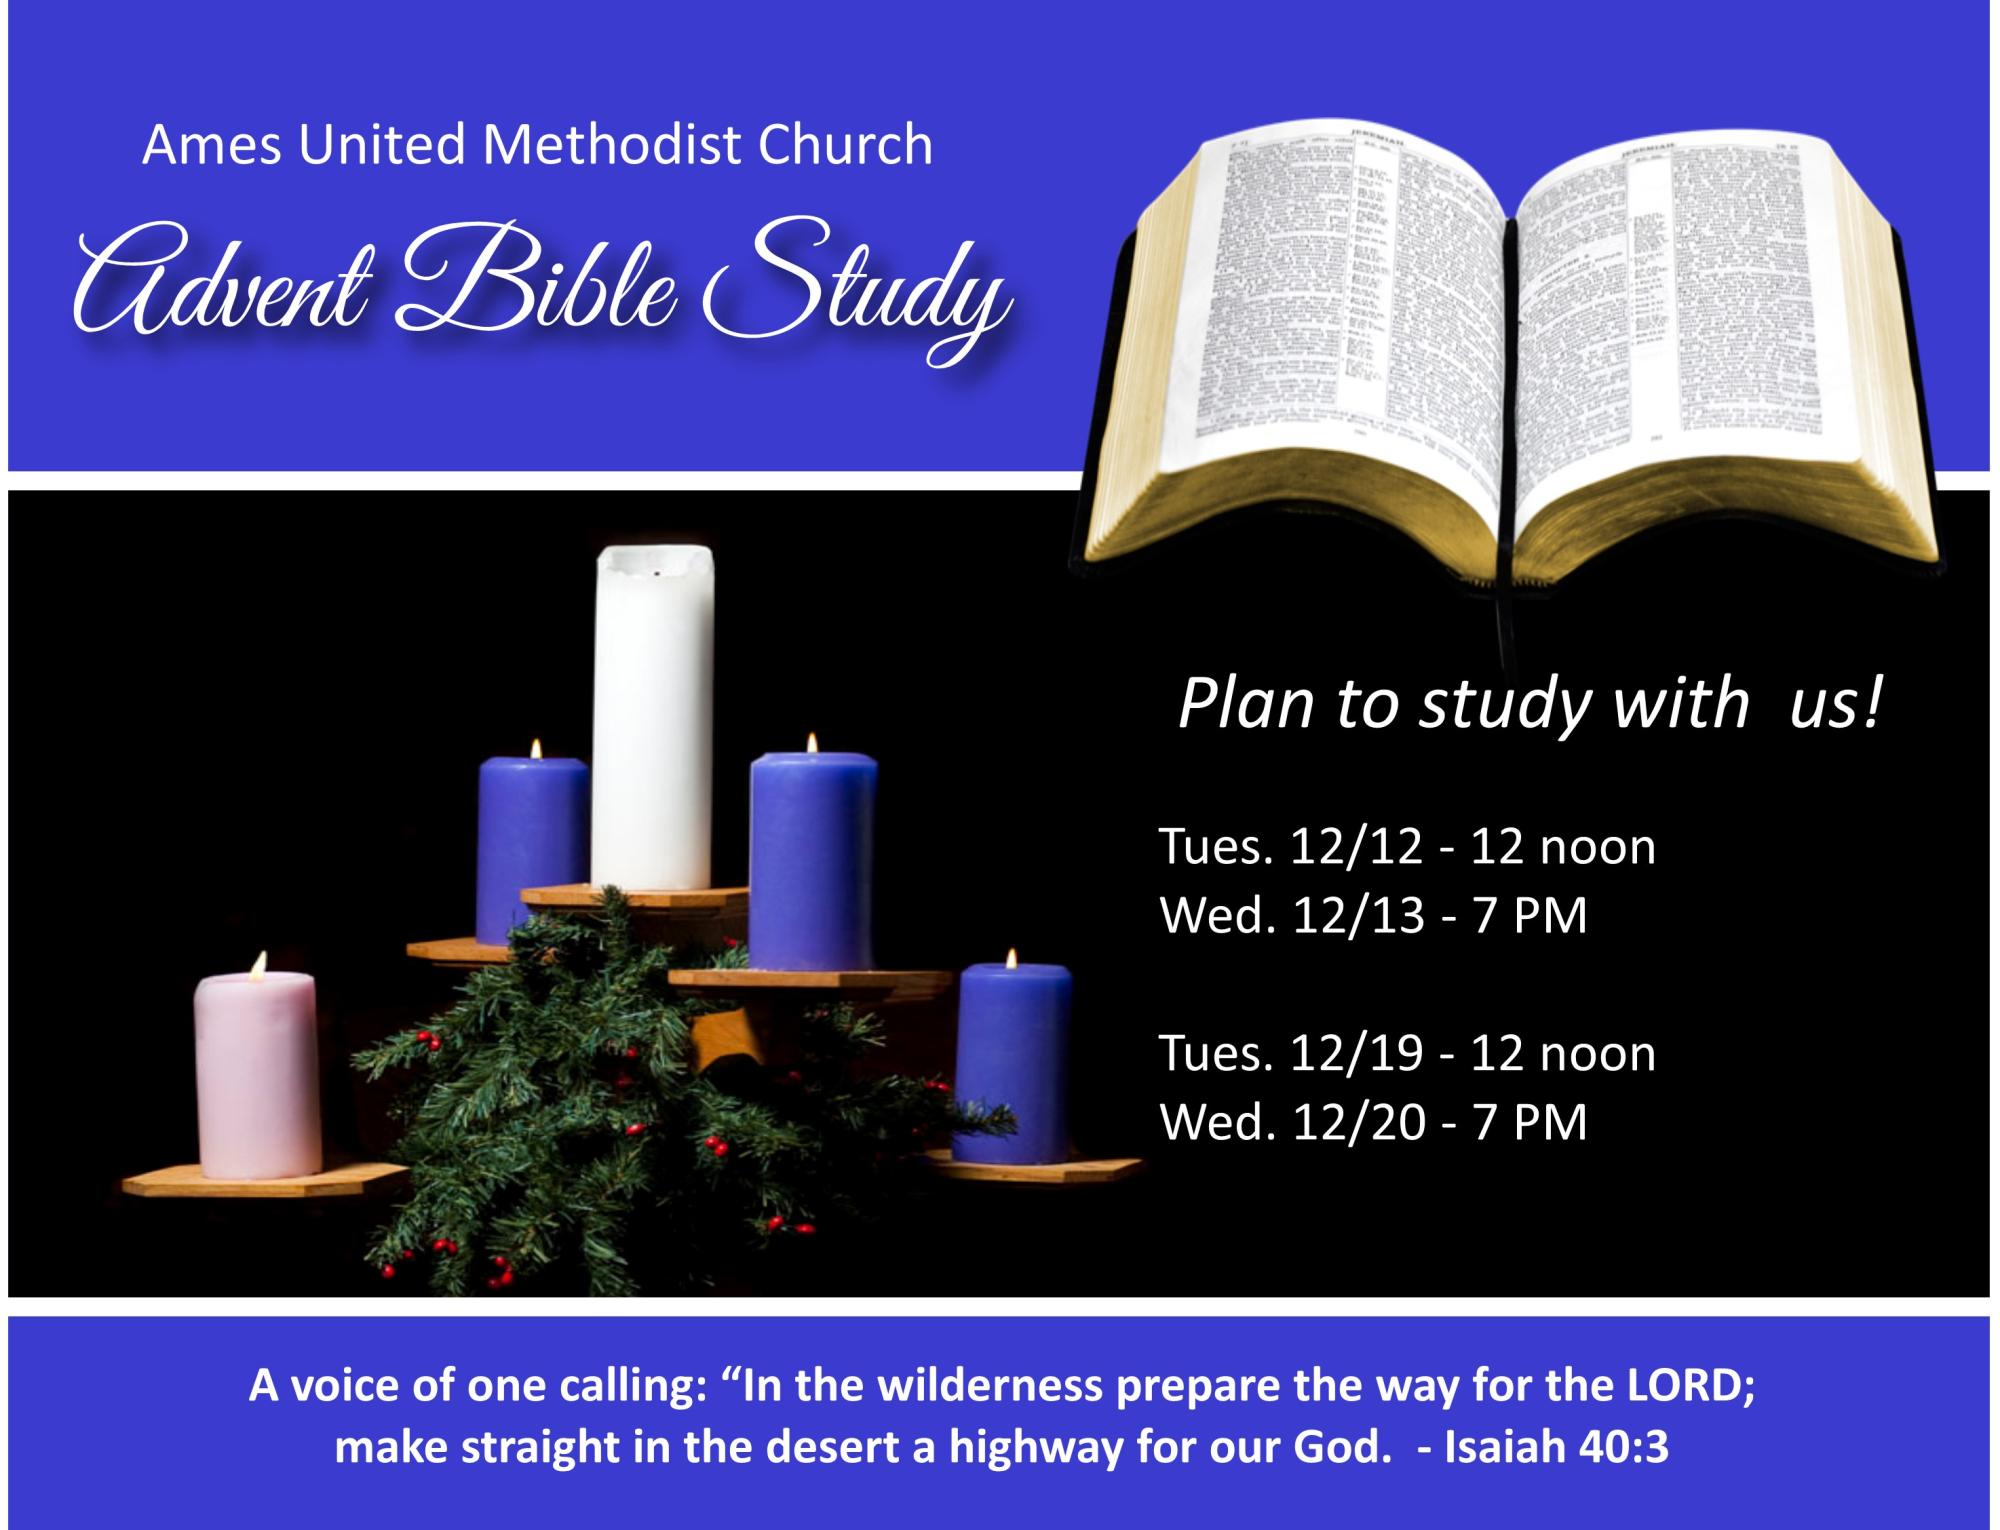 Revised_Advent_Bible_Study.jpg